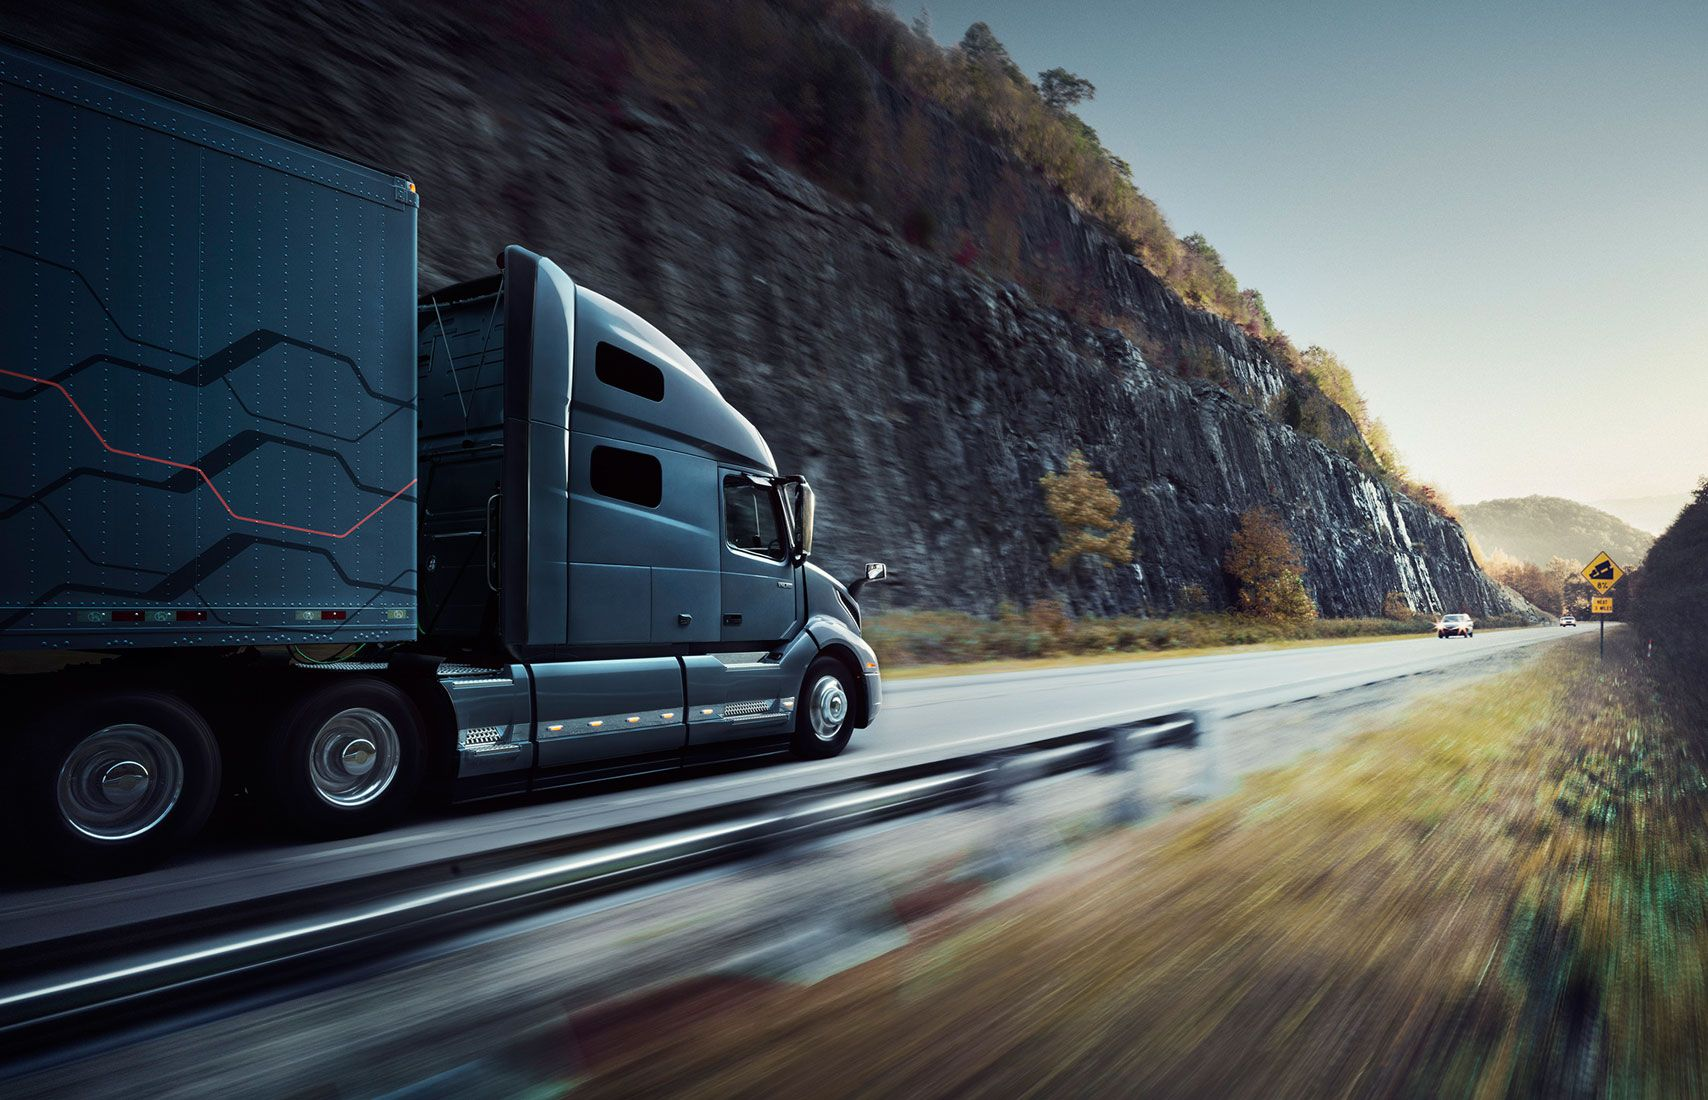 Make Your Business Transportation Legitimate By Getting Your Semi